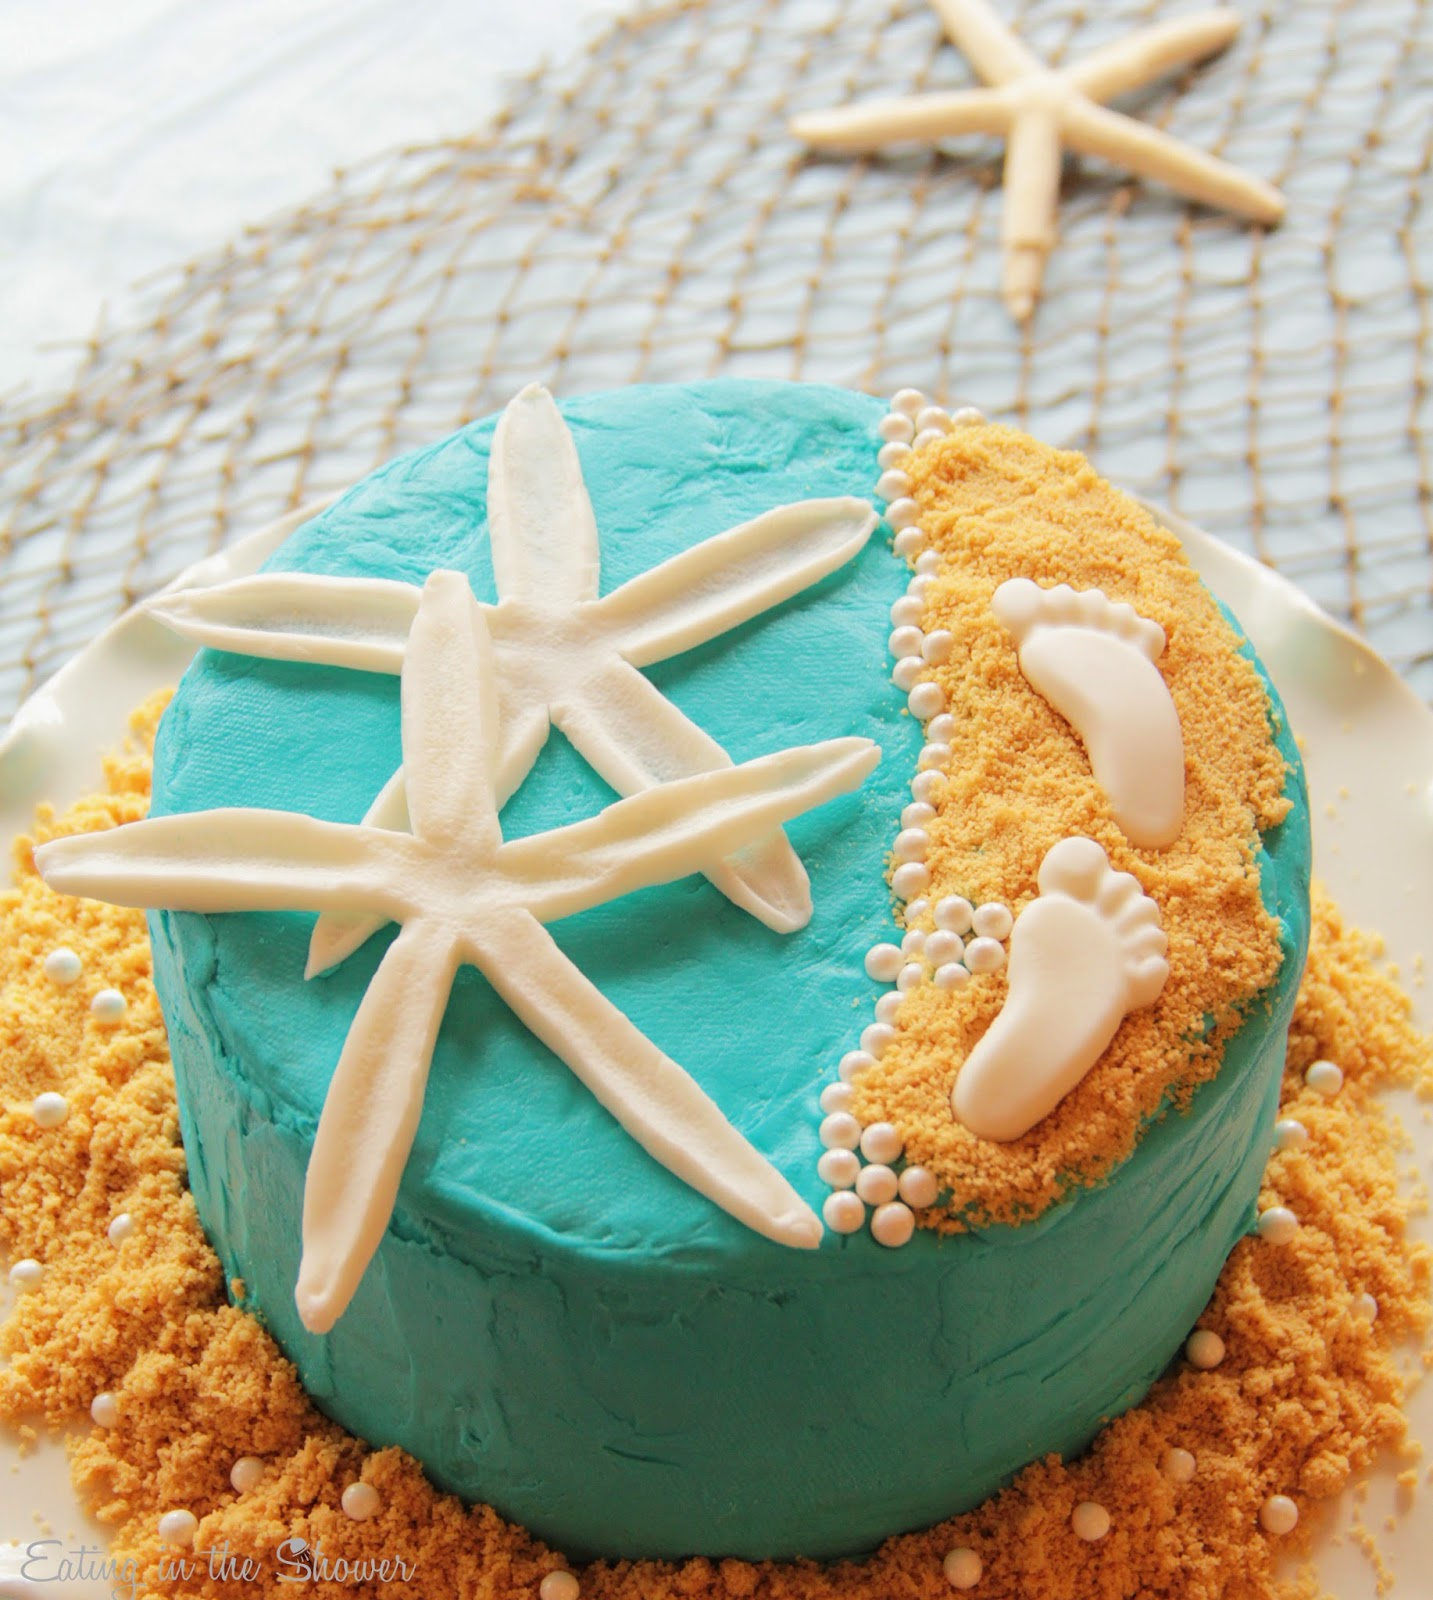 Adorable Beach theme baby shower cake with starfish and baby footprints